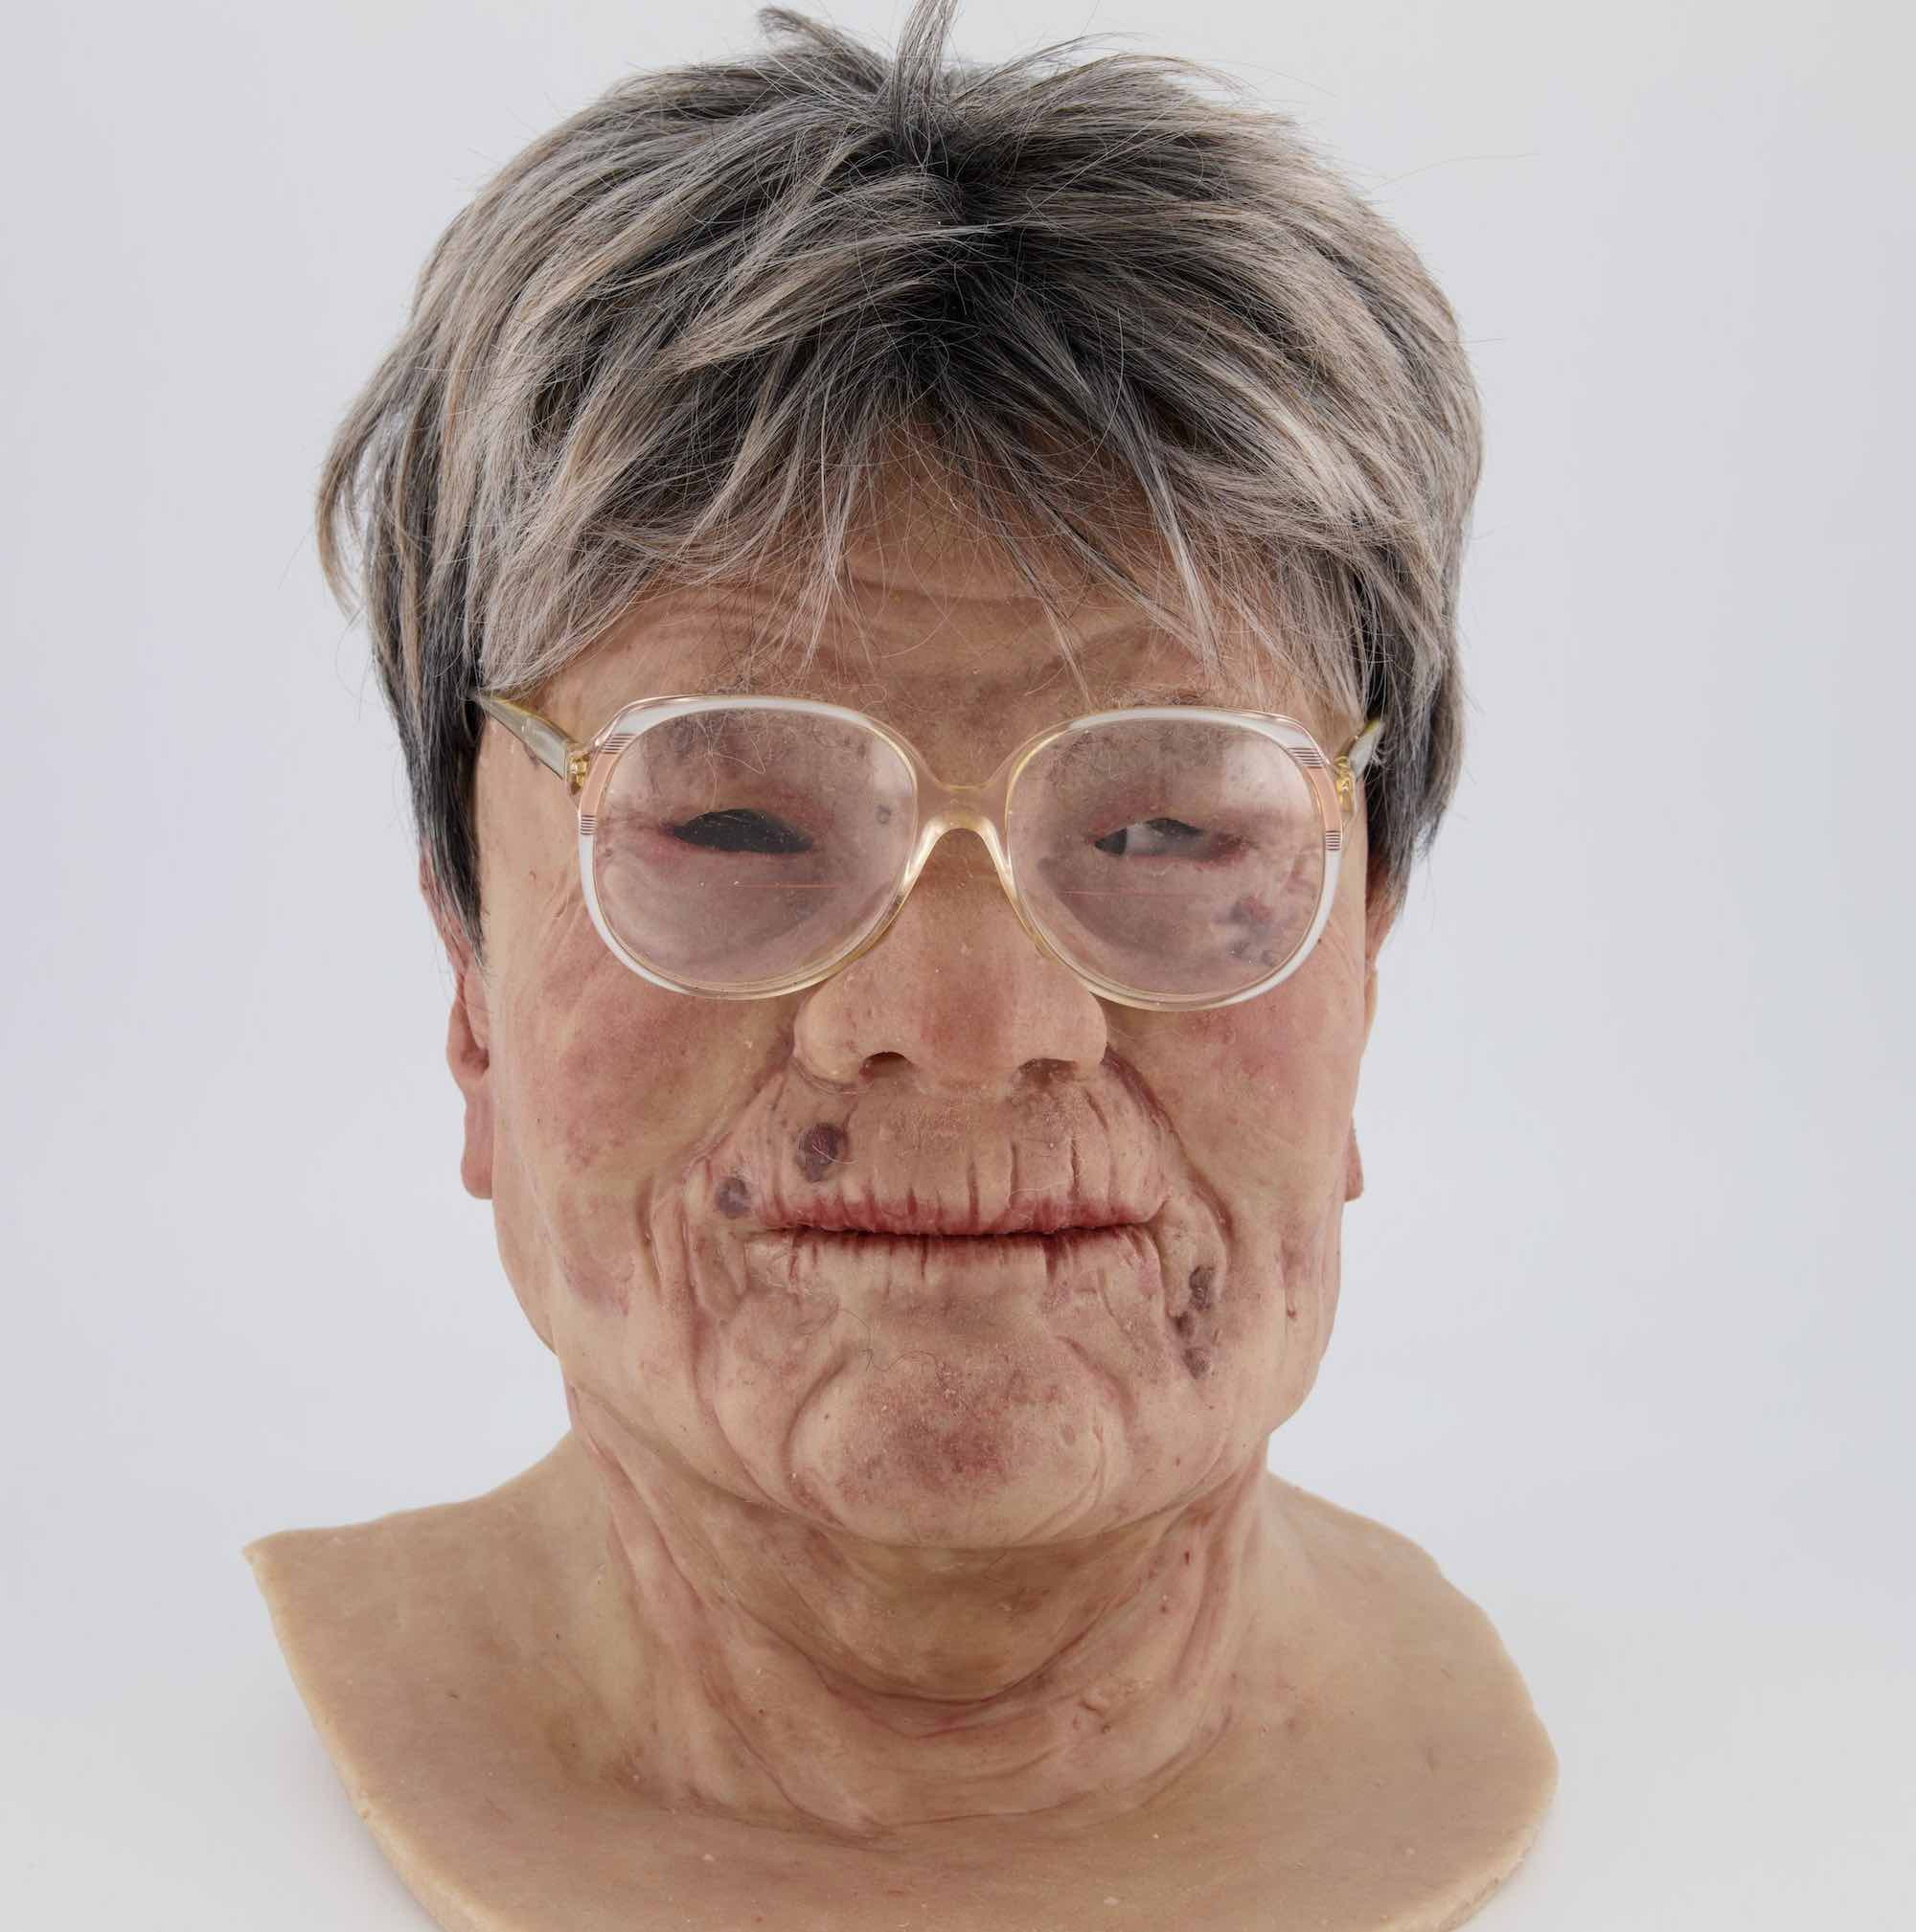 Simulated Patient Masks